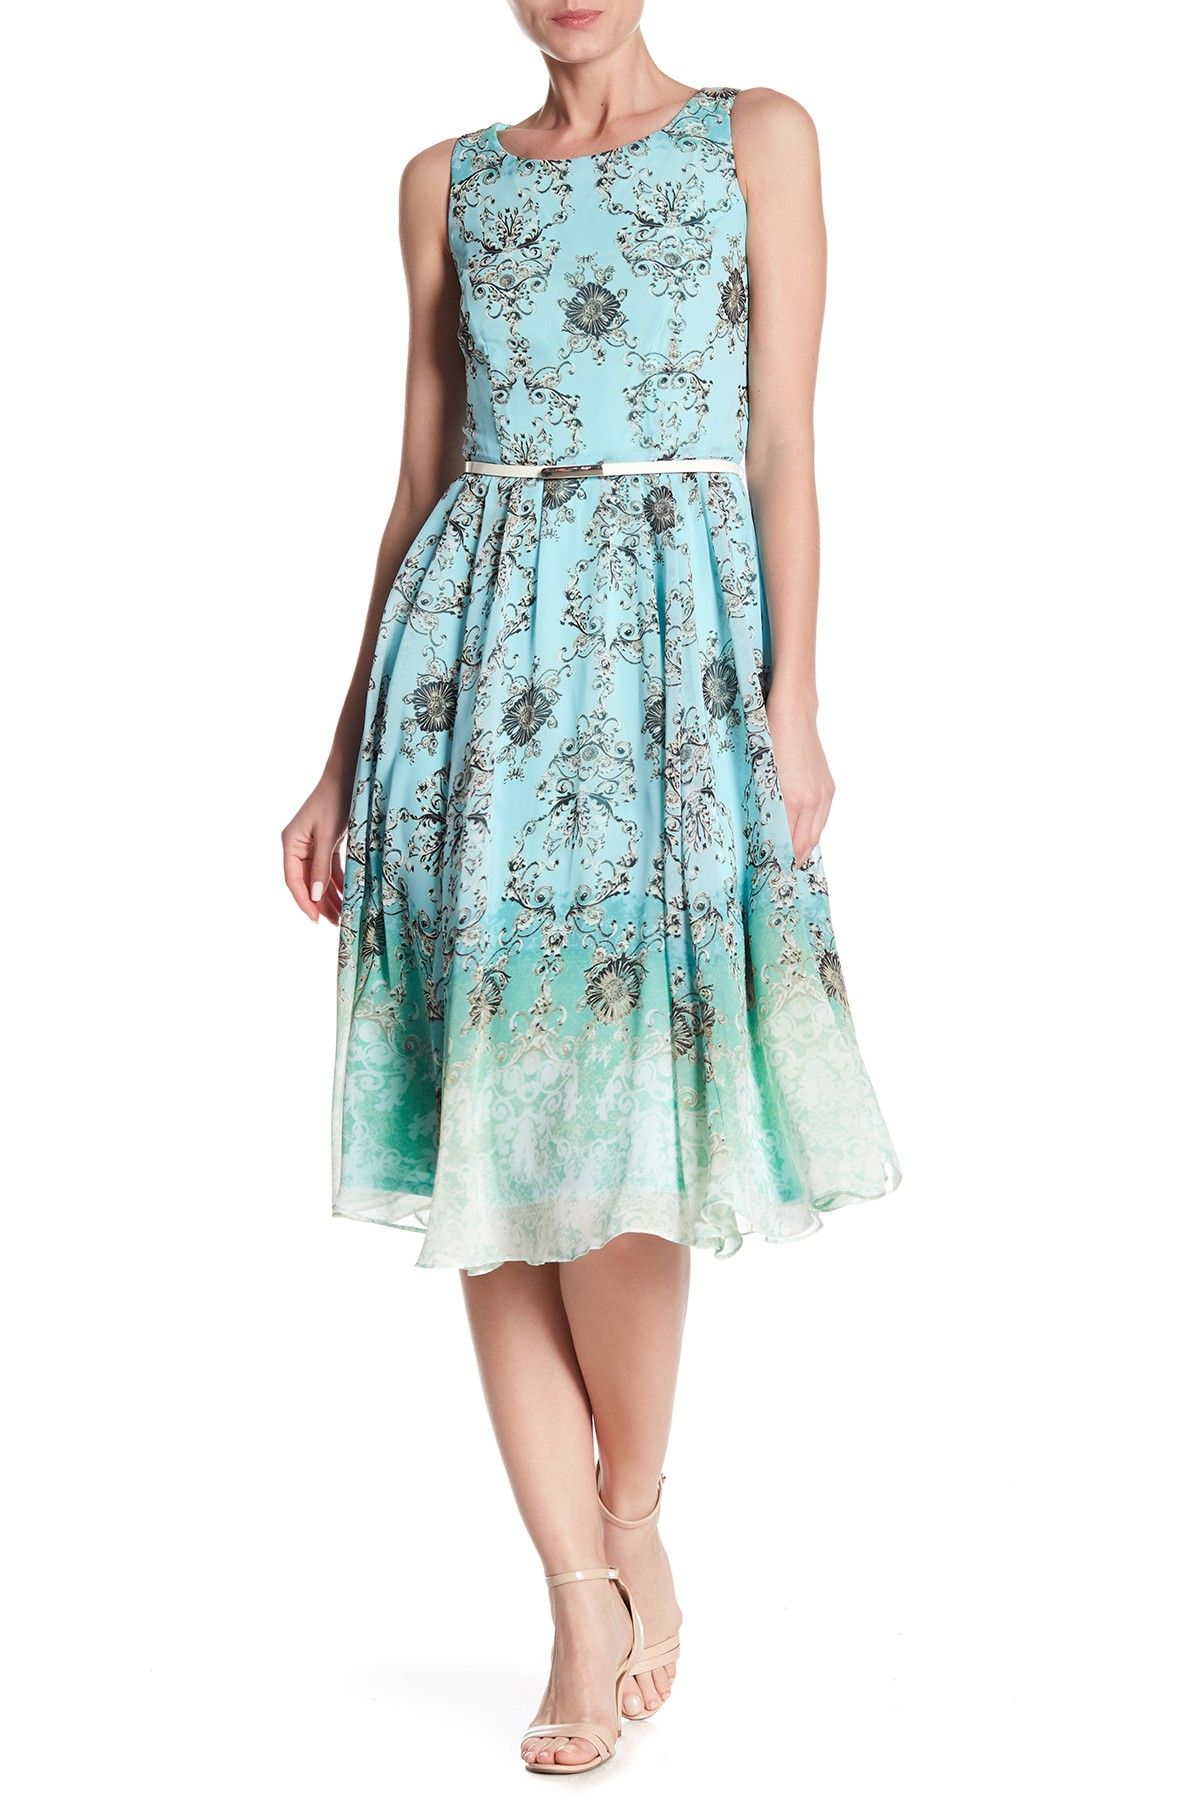 92d93e3cd3a Gabby Skye - Waist Belt Floral Print Dress is now 59% off. Free Shipping on  orders over  100.